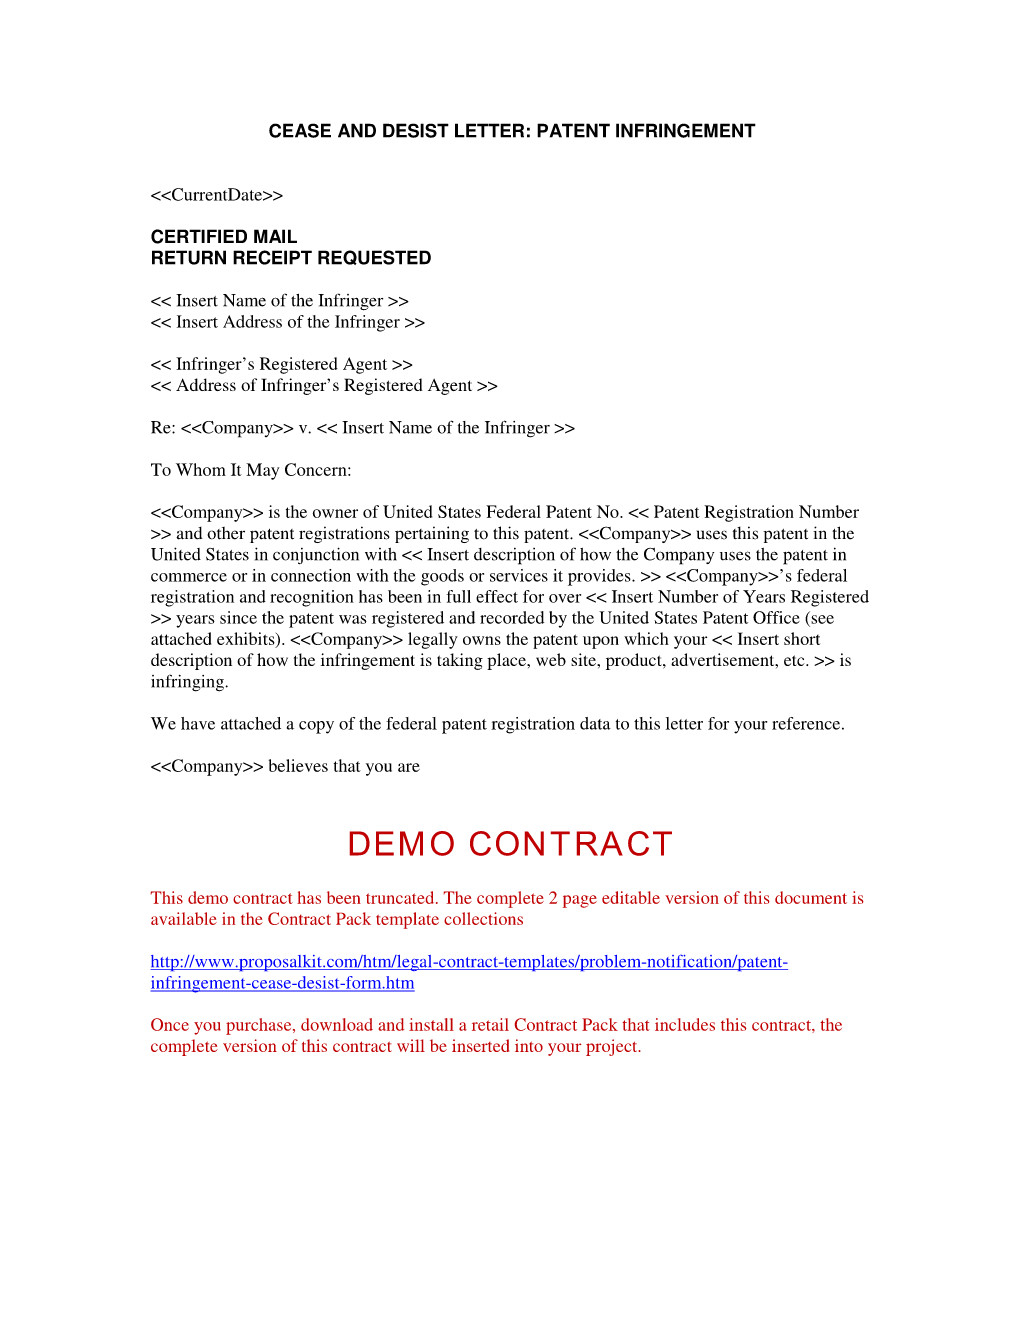 Cease and Decease Letter Template - Cease and Decease Letter Template Infringement Desist form Cp Patent